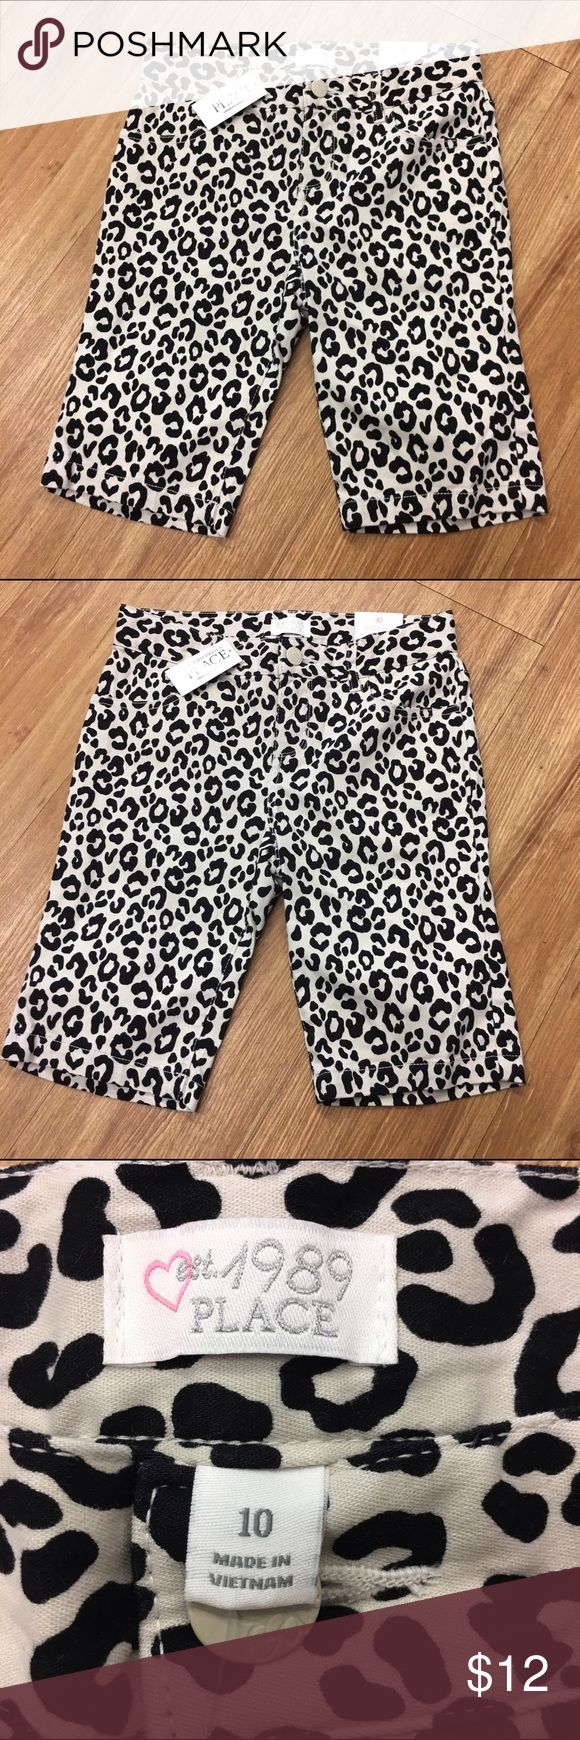 The Children's Place Leopard Print Shorts Skimmer The Children's Place Leopard Print Shorts Skimmer NEW NWT 10  Adjustable waist, longer length.  Super skinny fit with plenty of stretch.  Four pocket style.  #cheetah #animalprint #everylittlegirlneedsleopard #new #nwt #skimmer #shorts #adjustablewaist #longerlength #leopard Children's Place Bottoms Shorts